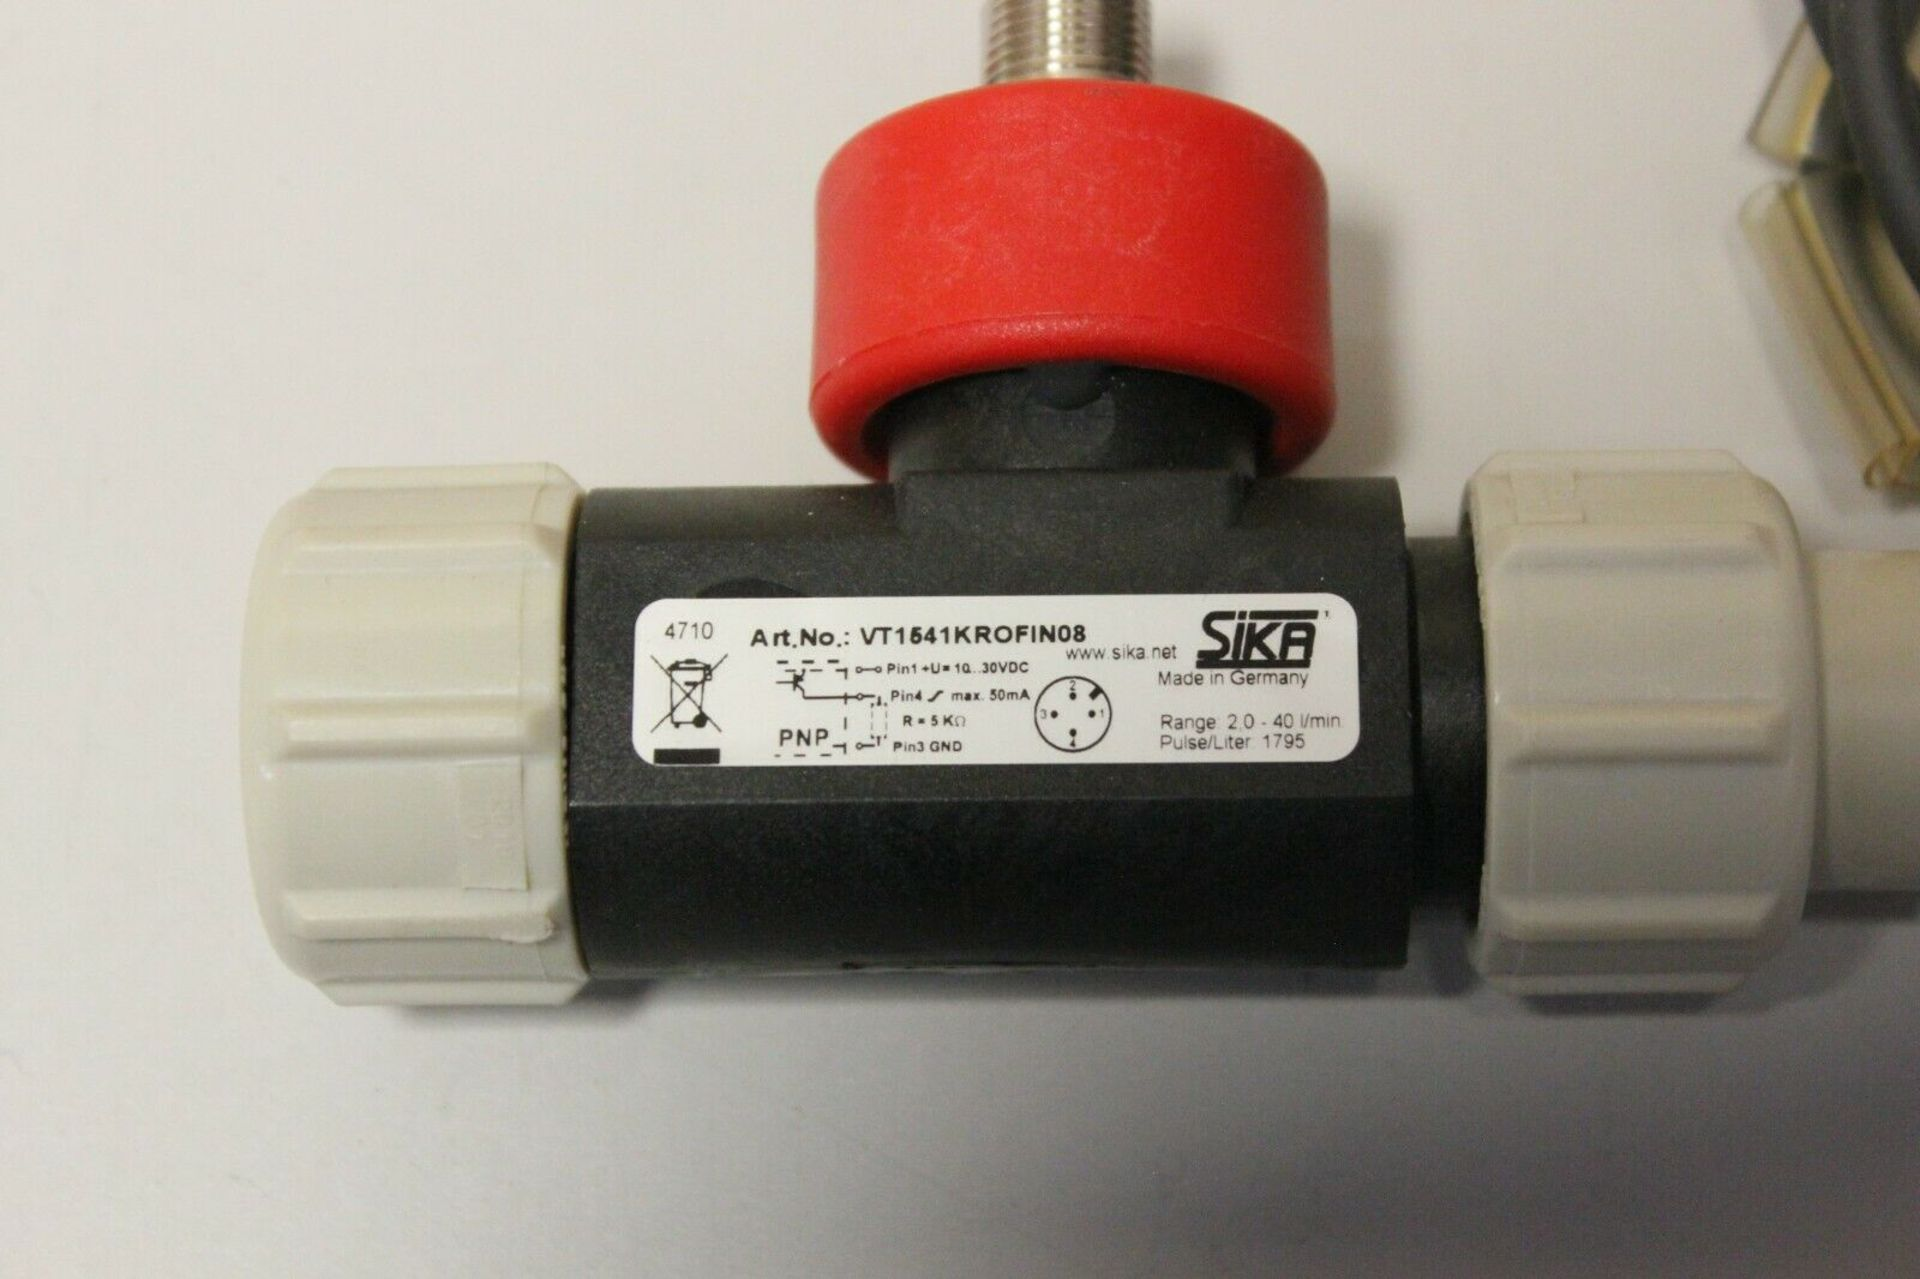 SIKA TURBINE FLOW SENSOR WITH CABLE - Image 2 of 7